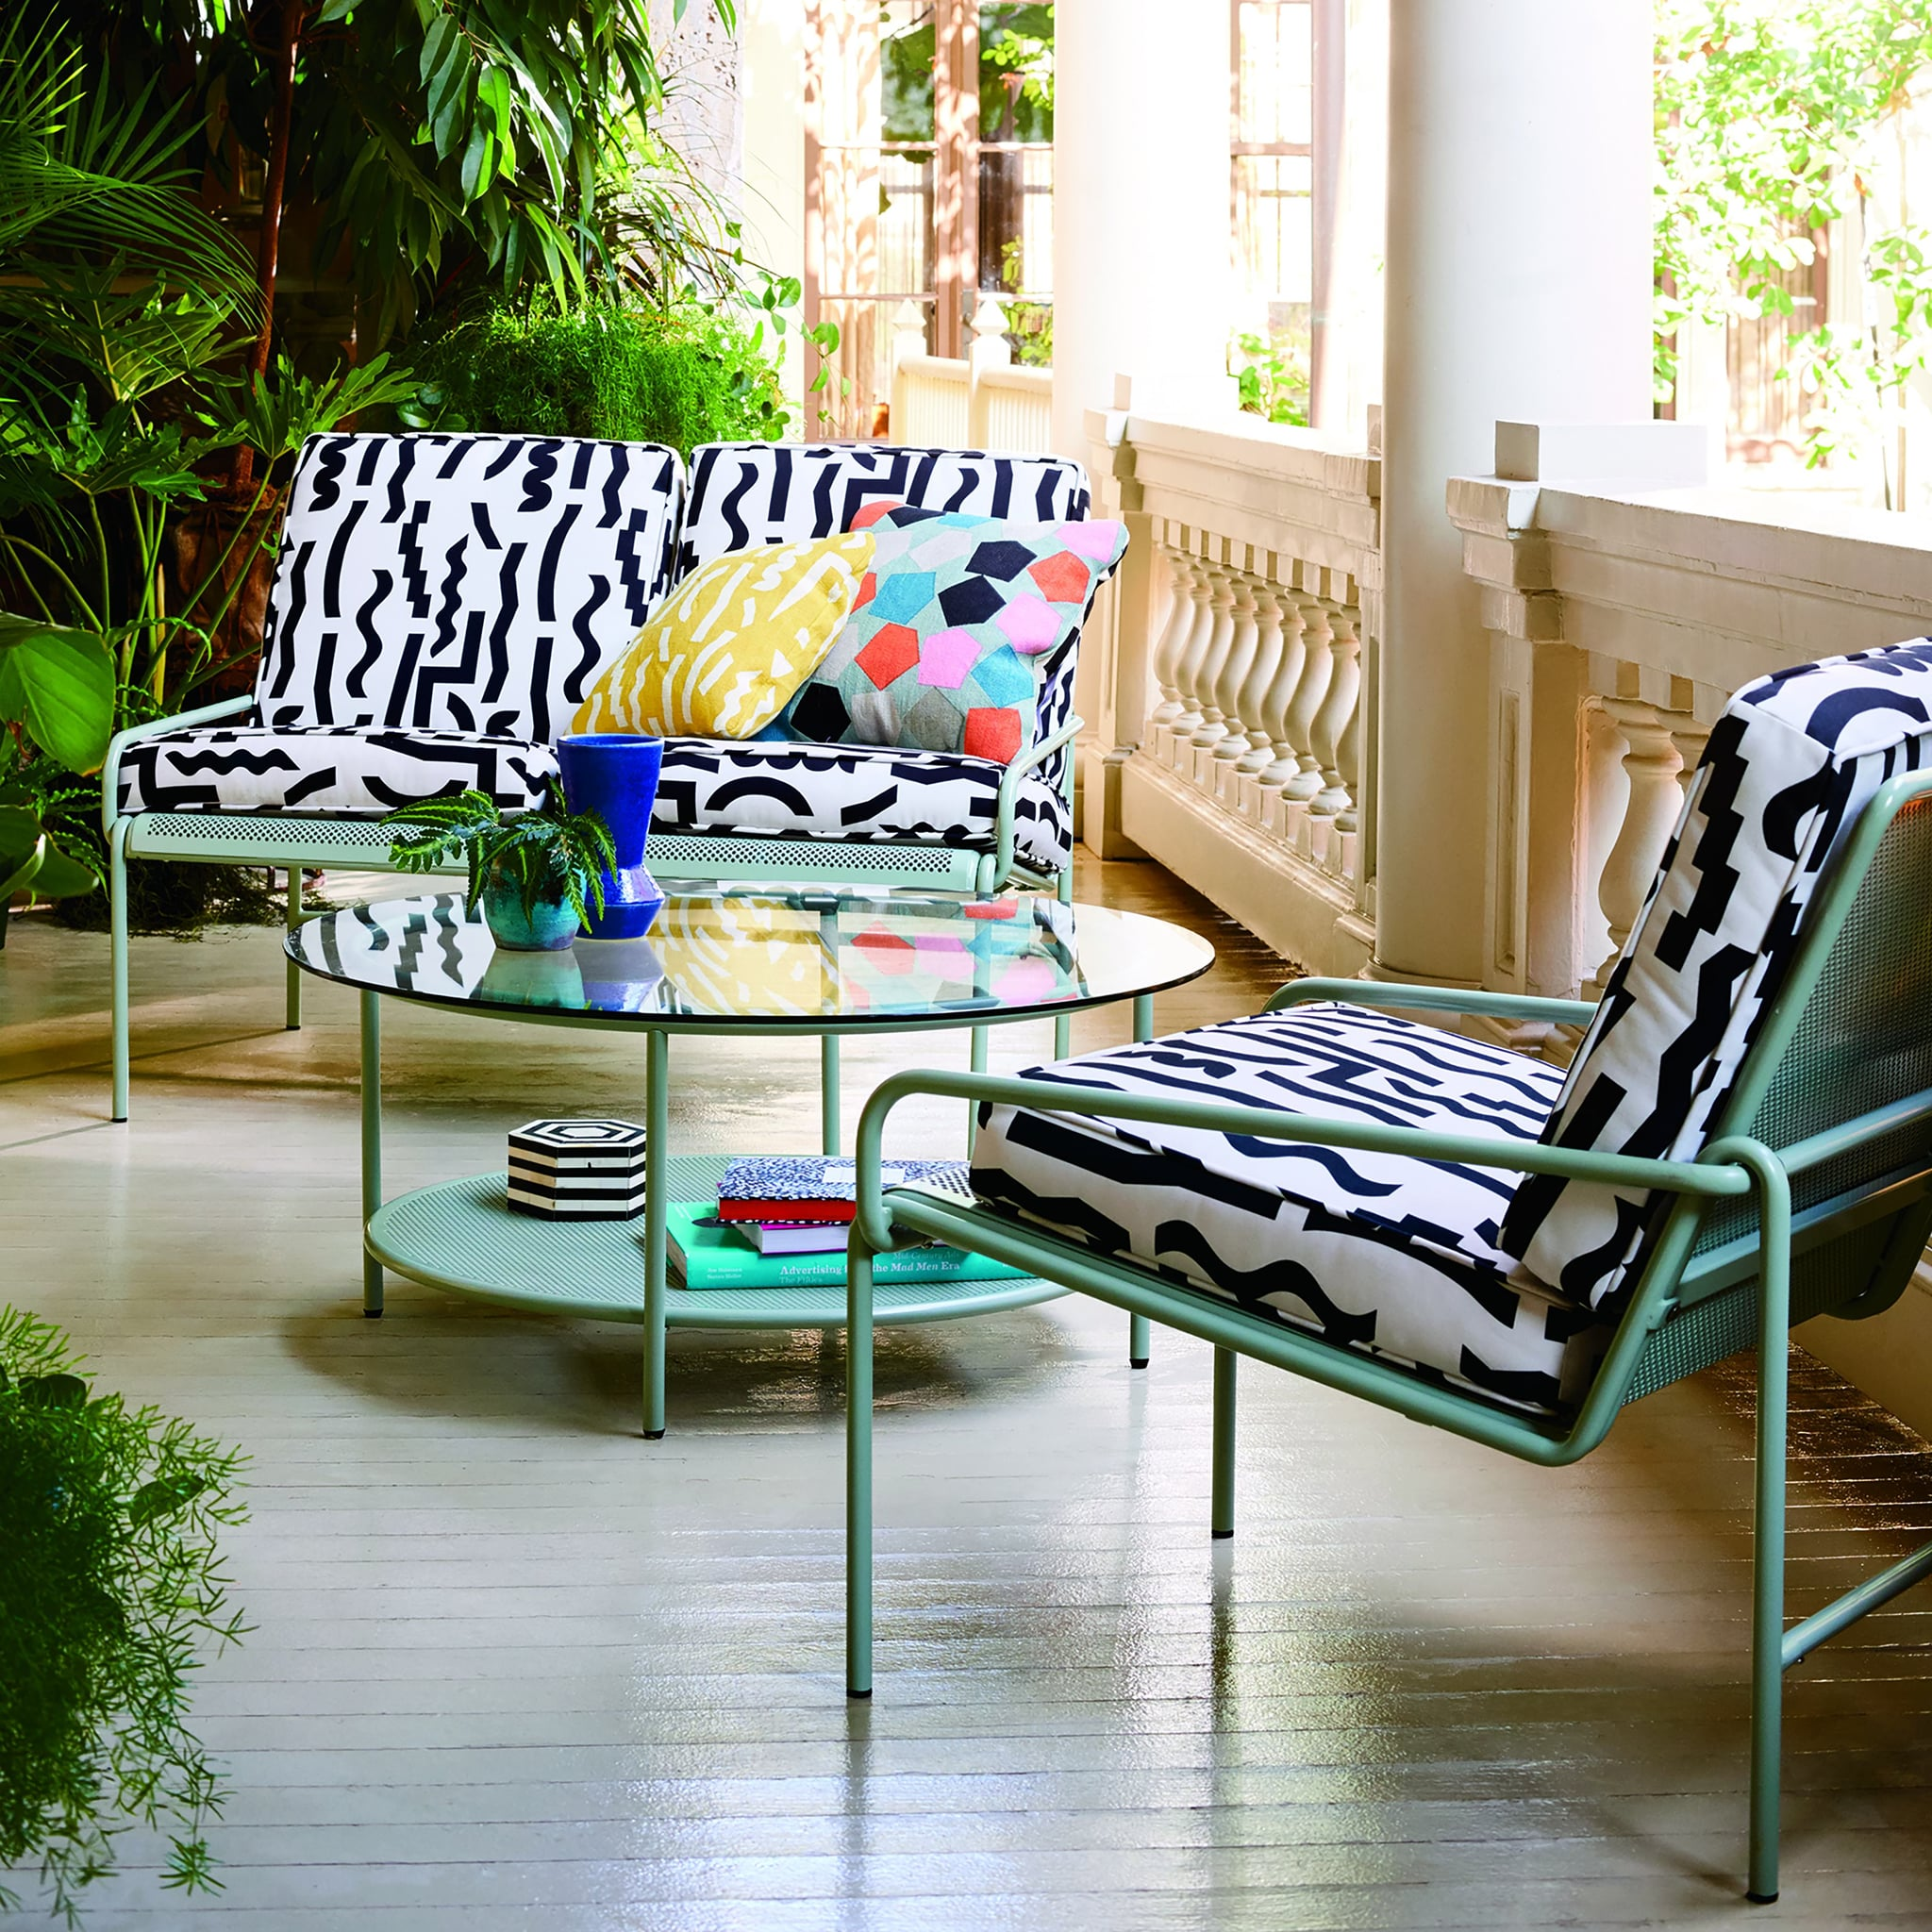 West elm collection new designs that define - West Elm Summer 2017 Collection